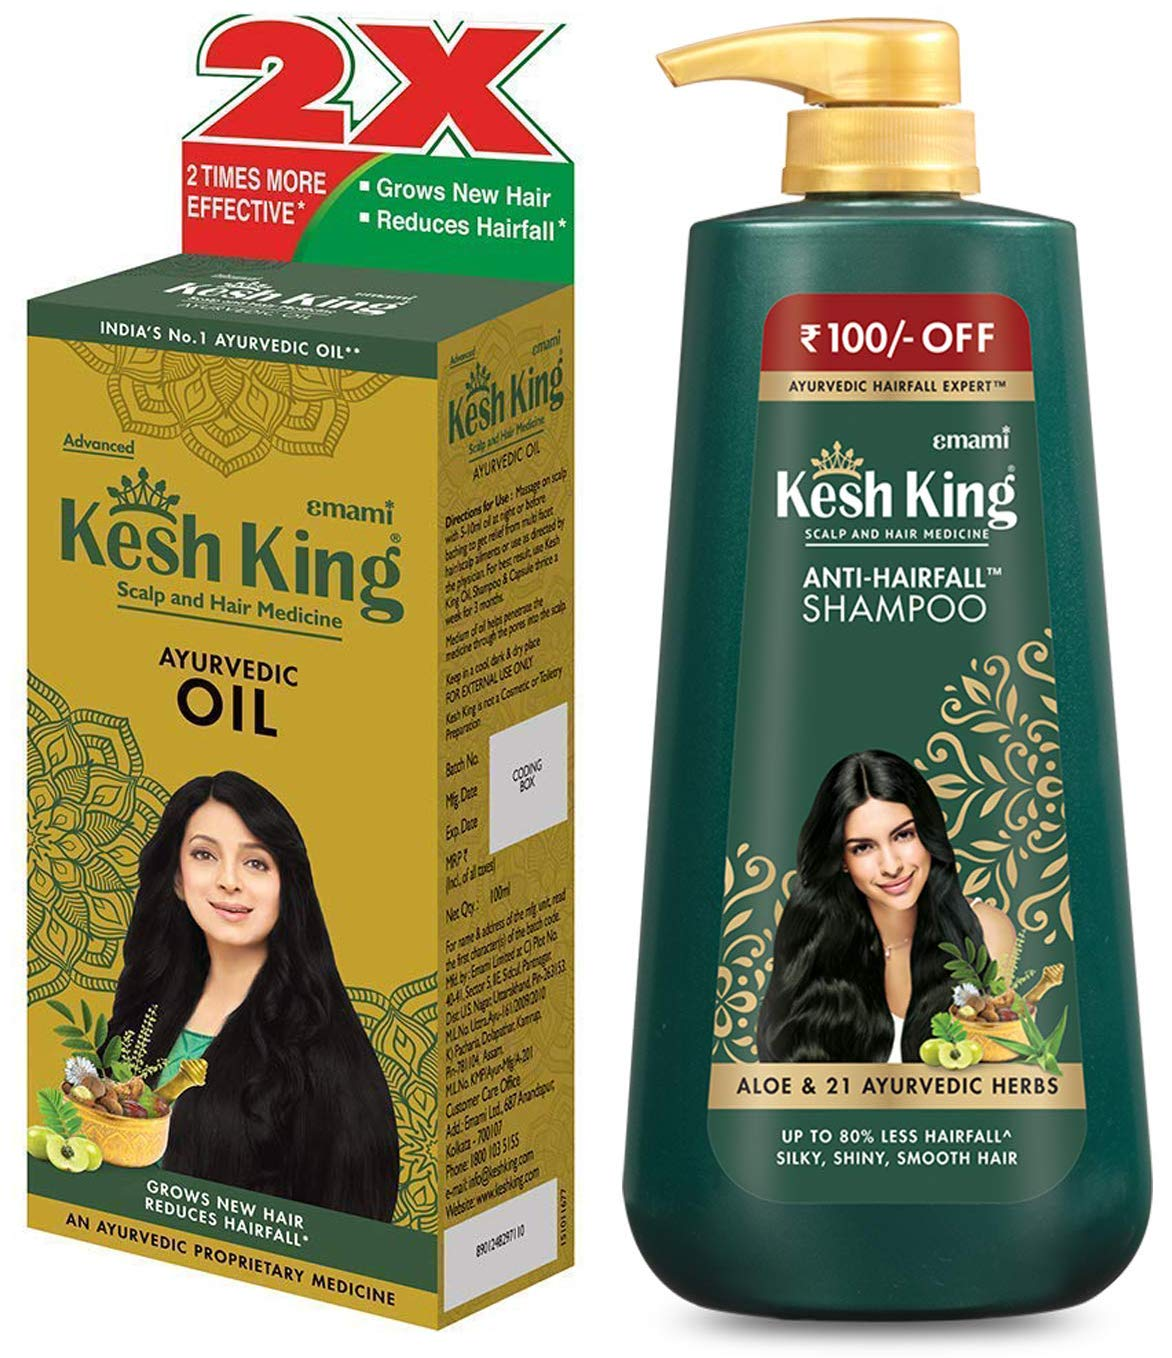 Kesh King Ayurvedic Anti Hairfall Hair Oil, 300ml & Kesh King Scalp and Hair Medicine Anti-Hairfall Shampoo, 600 ml